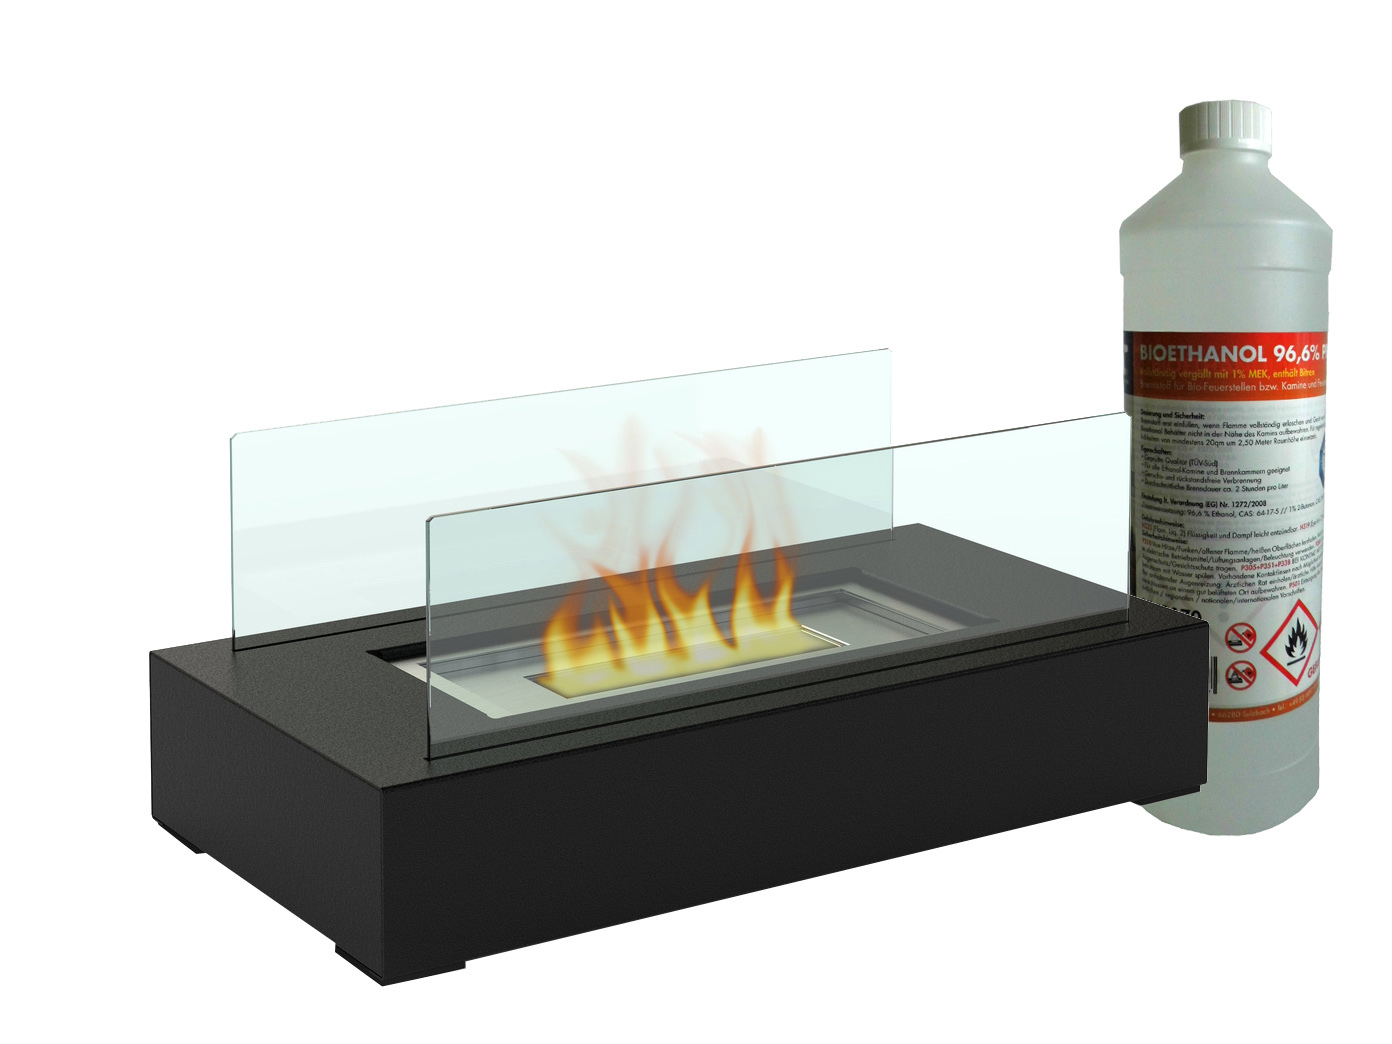 tischkamin mit 1liter bio ethanol tischfeuer glaskamin luxus kamin feuer ebay. Black Bedroom Furniture Sets. Home Design Ideas